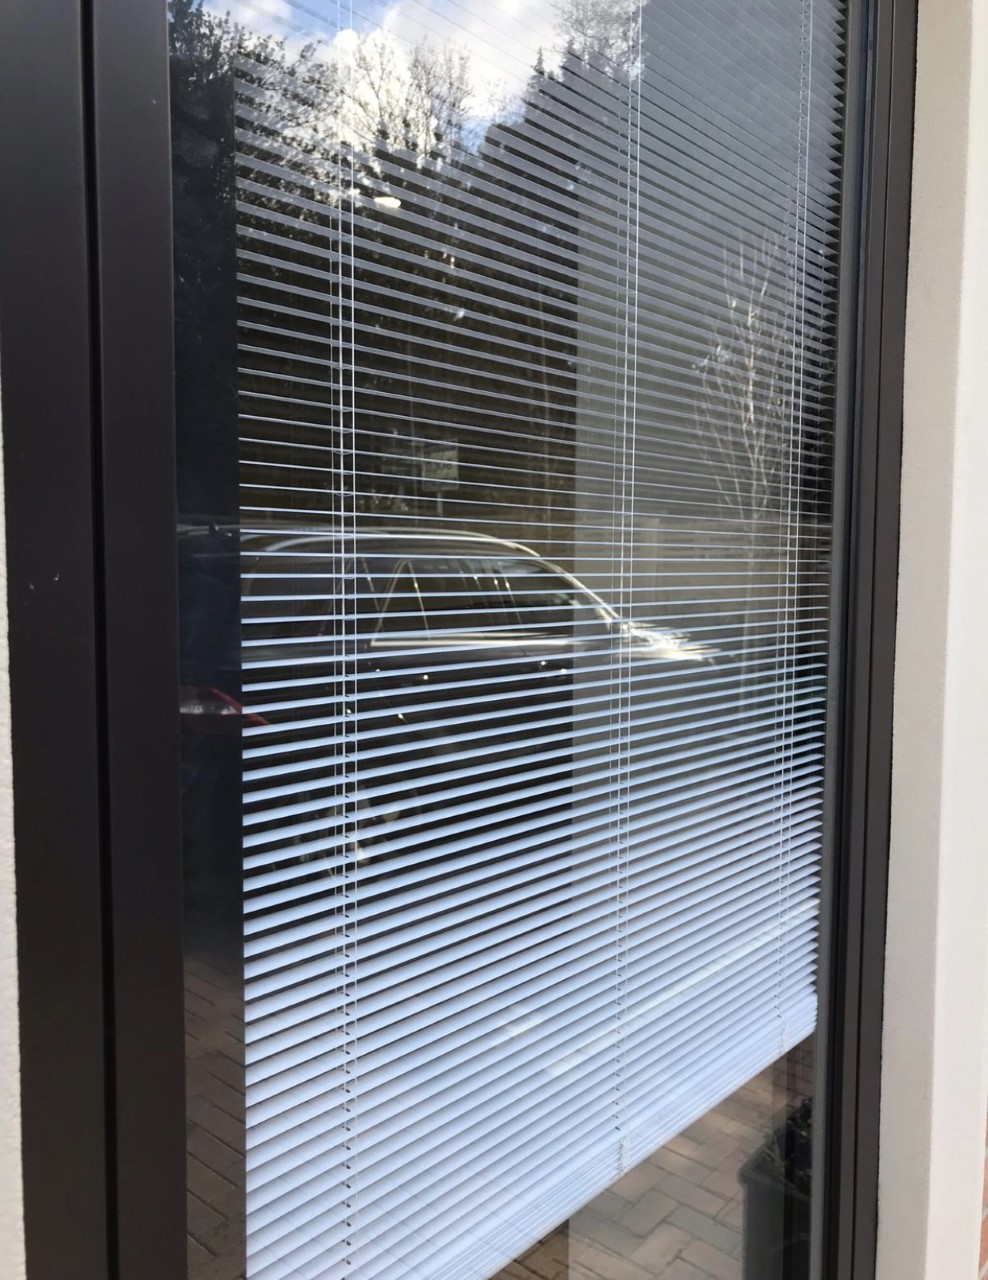 Windows with blinds inside